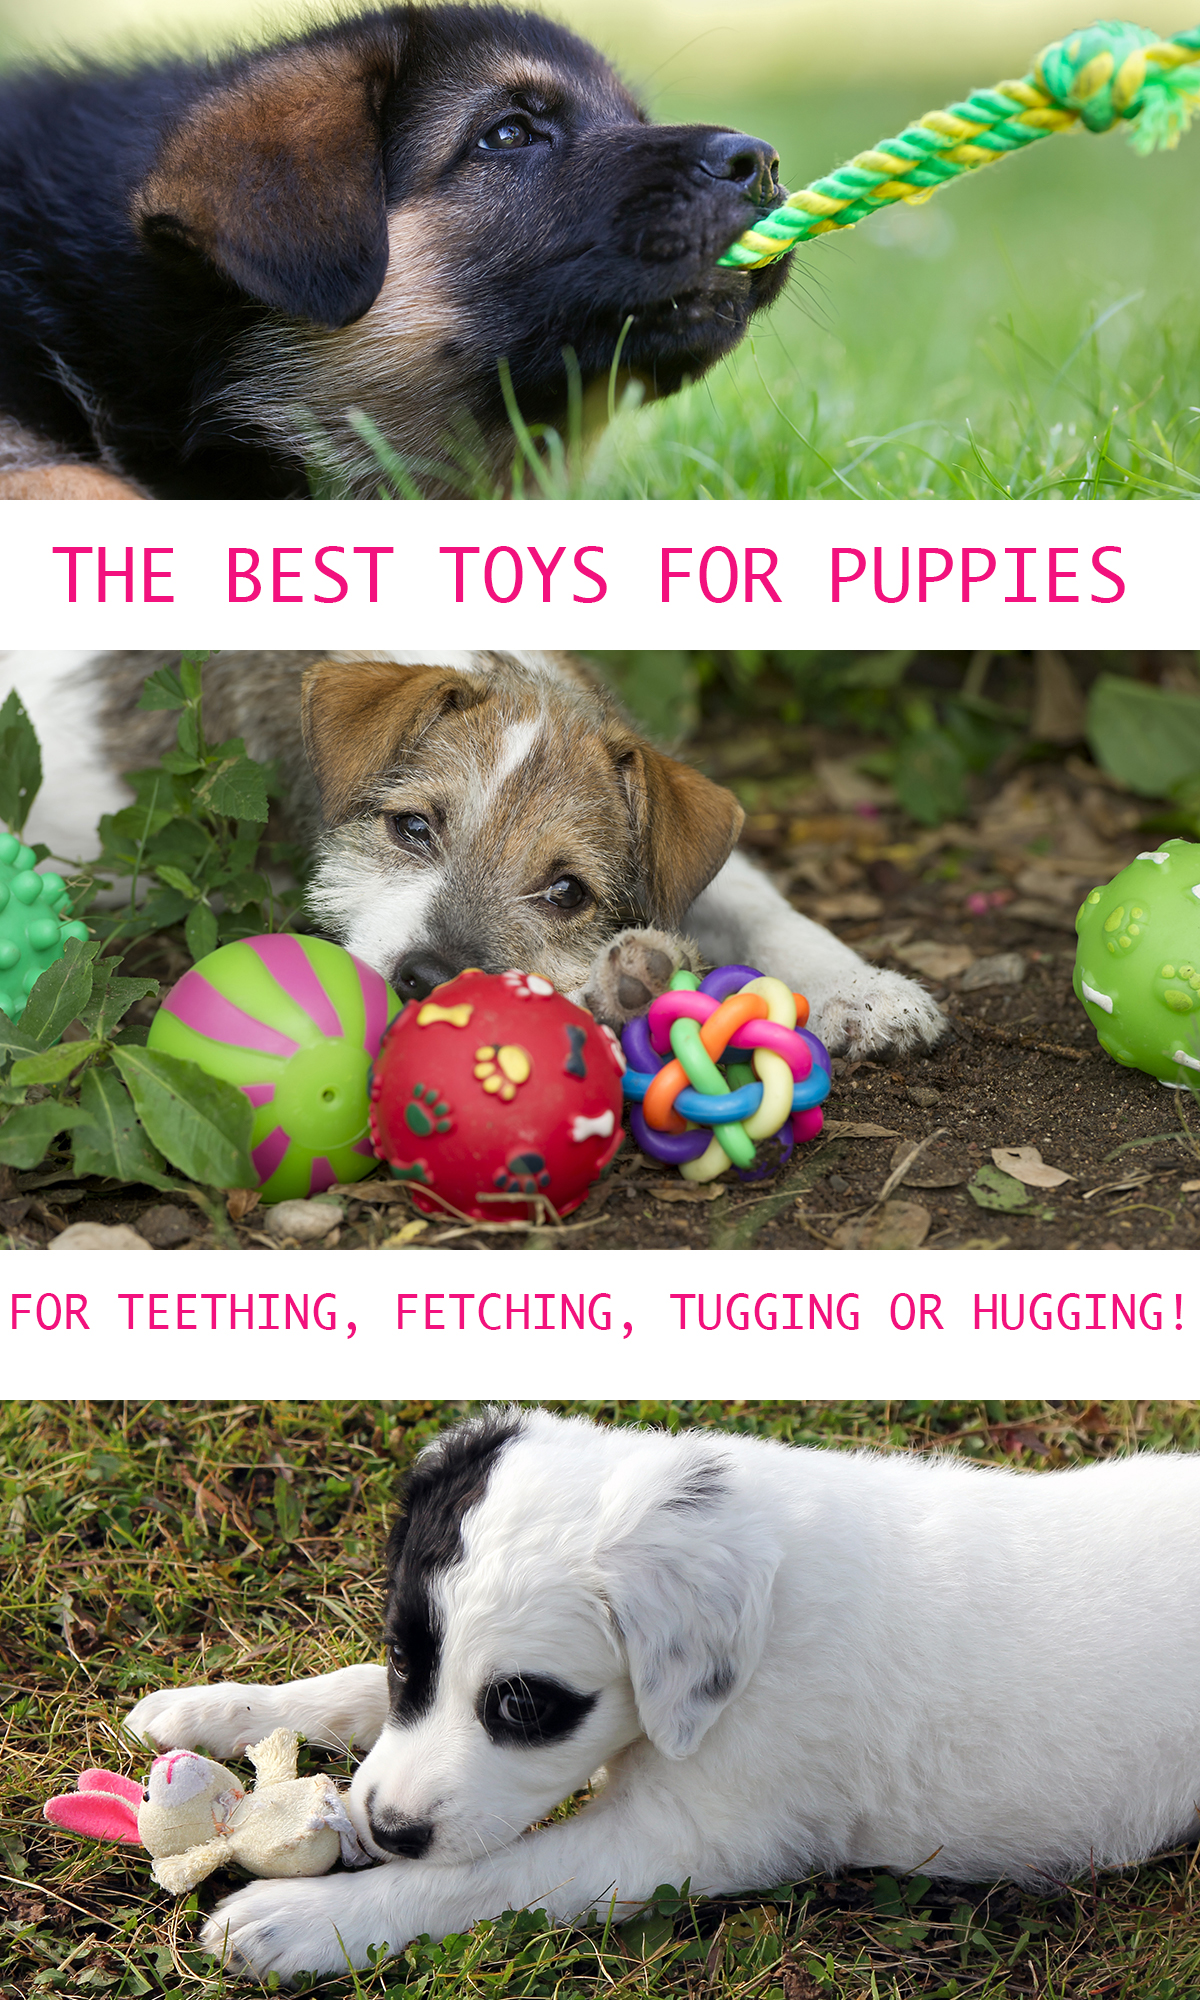 Puppy Toys The Best Dog Toys For Puppies The Happy Puppy Site